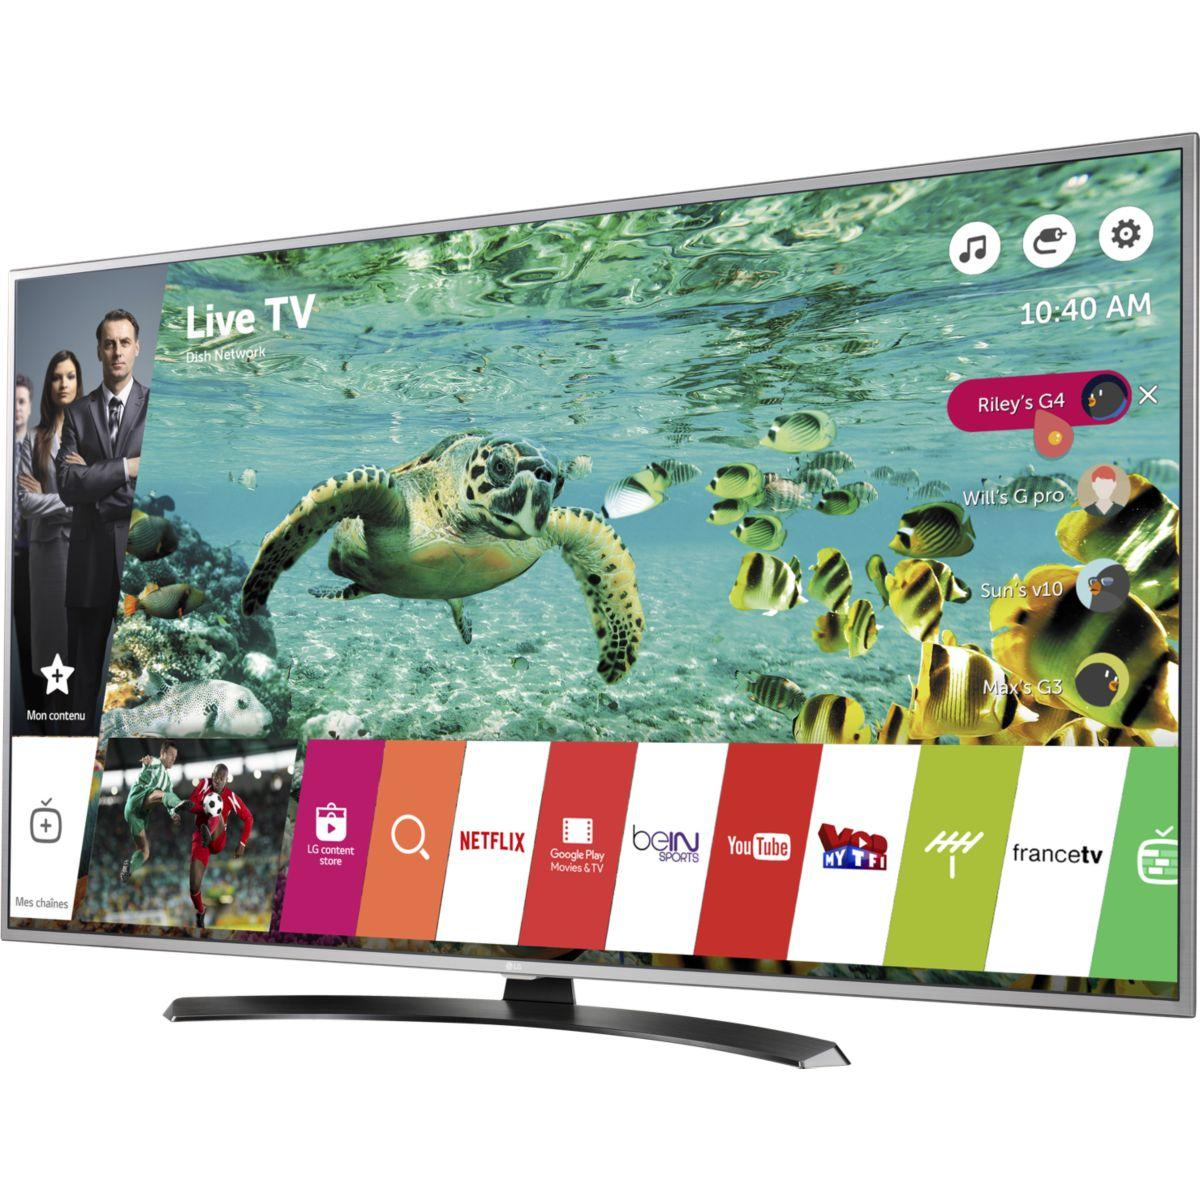 TV LG 49UH668V 4K HDR 100 PMI SMART TV